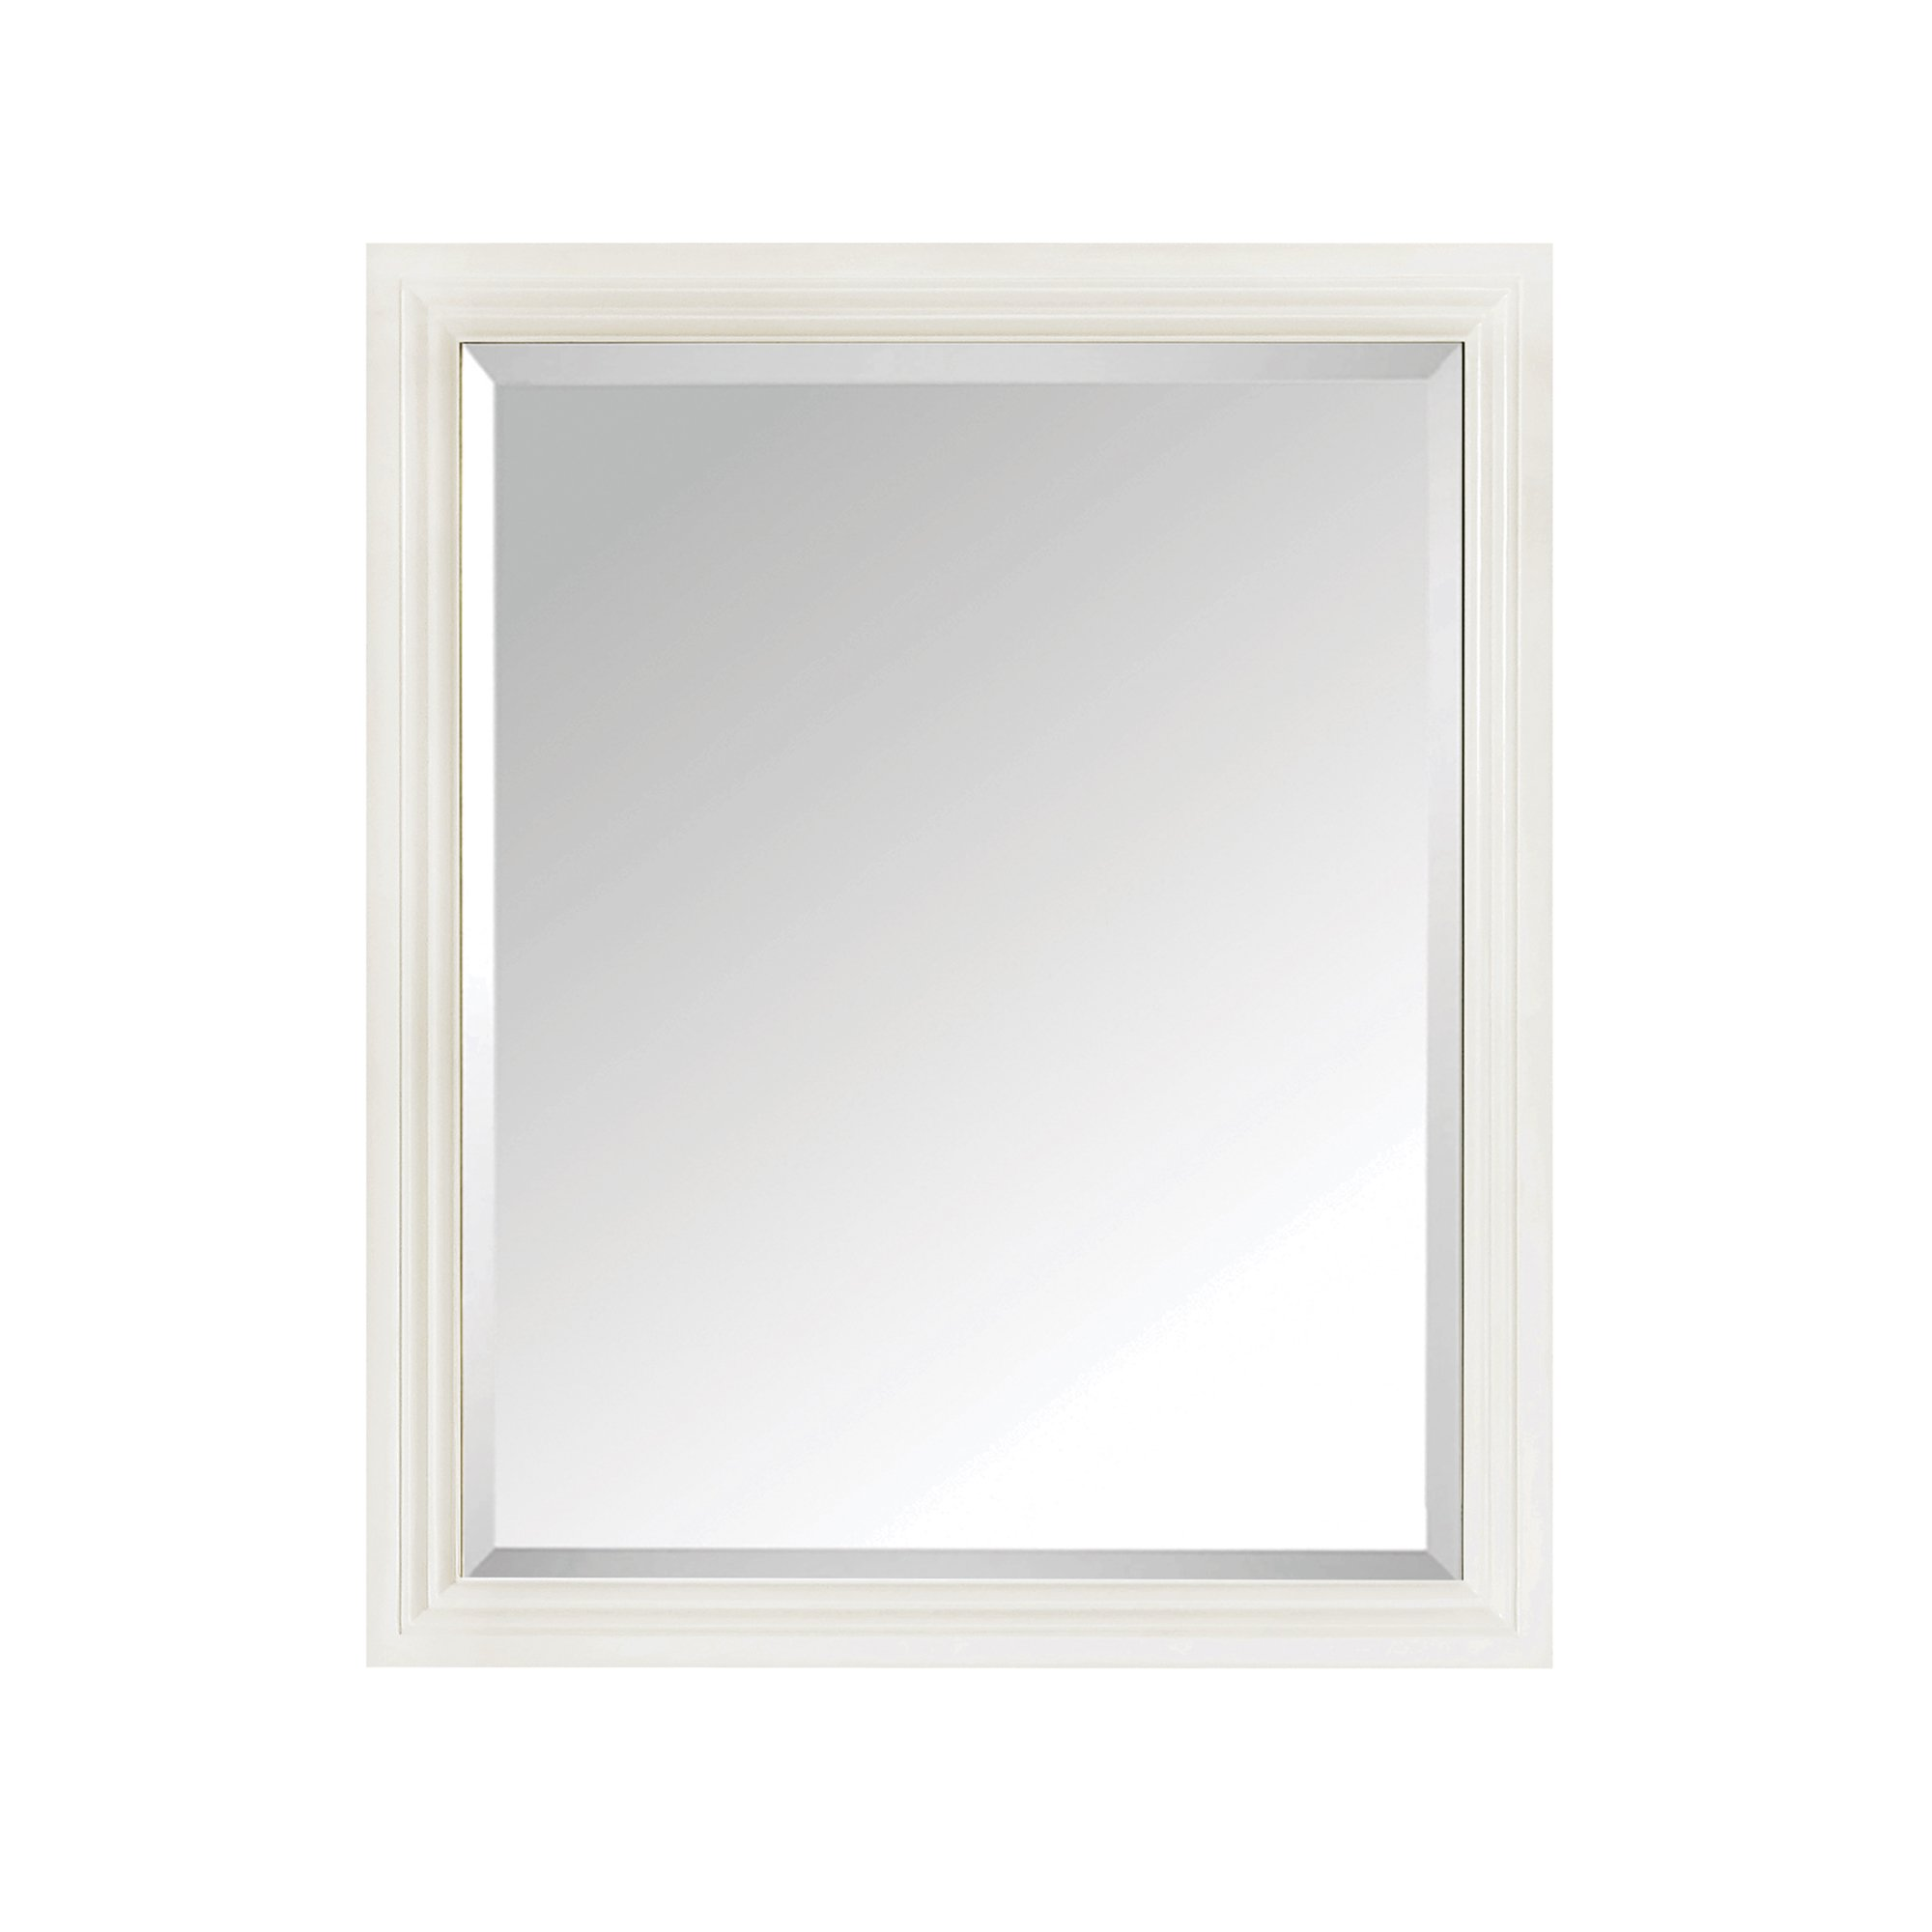 Avanity Thompson 28 in. Mirror in French White finish